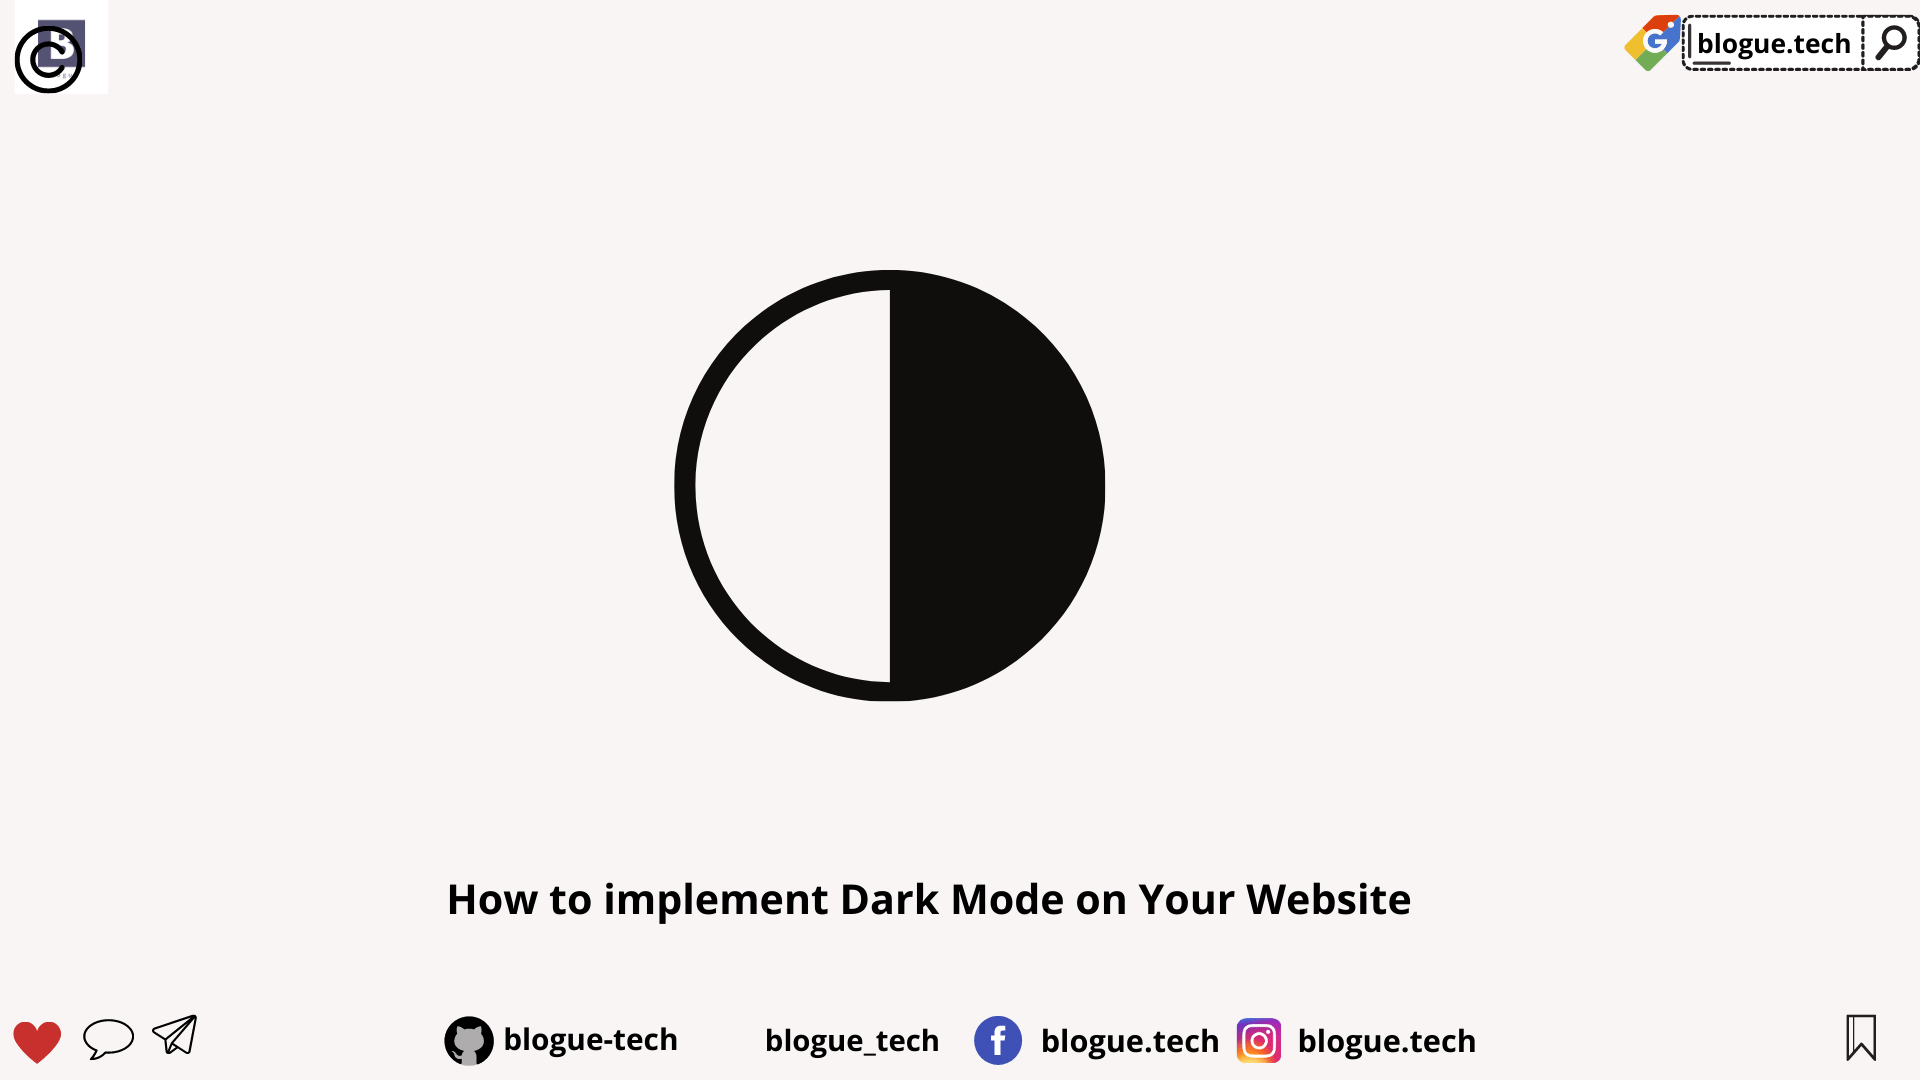 How to implement Dark Mode on Your Website